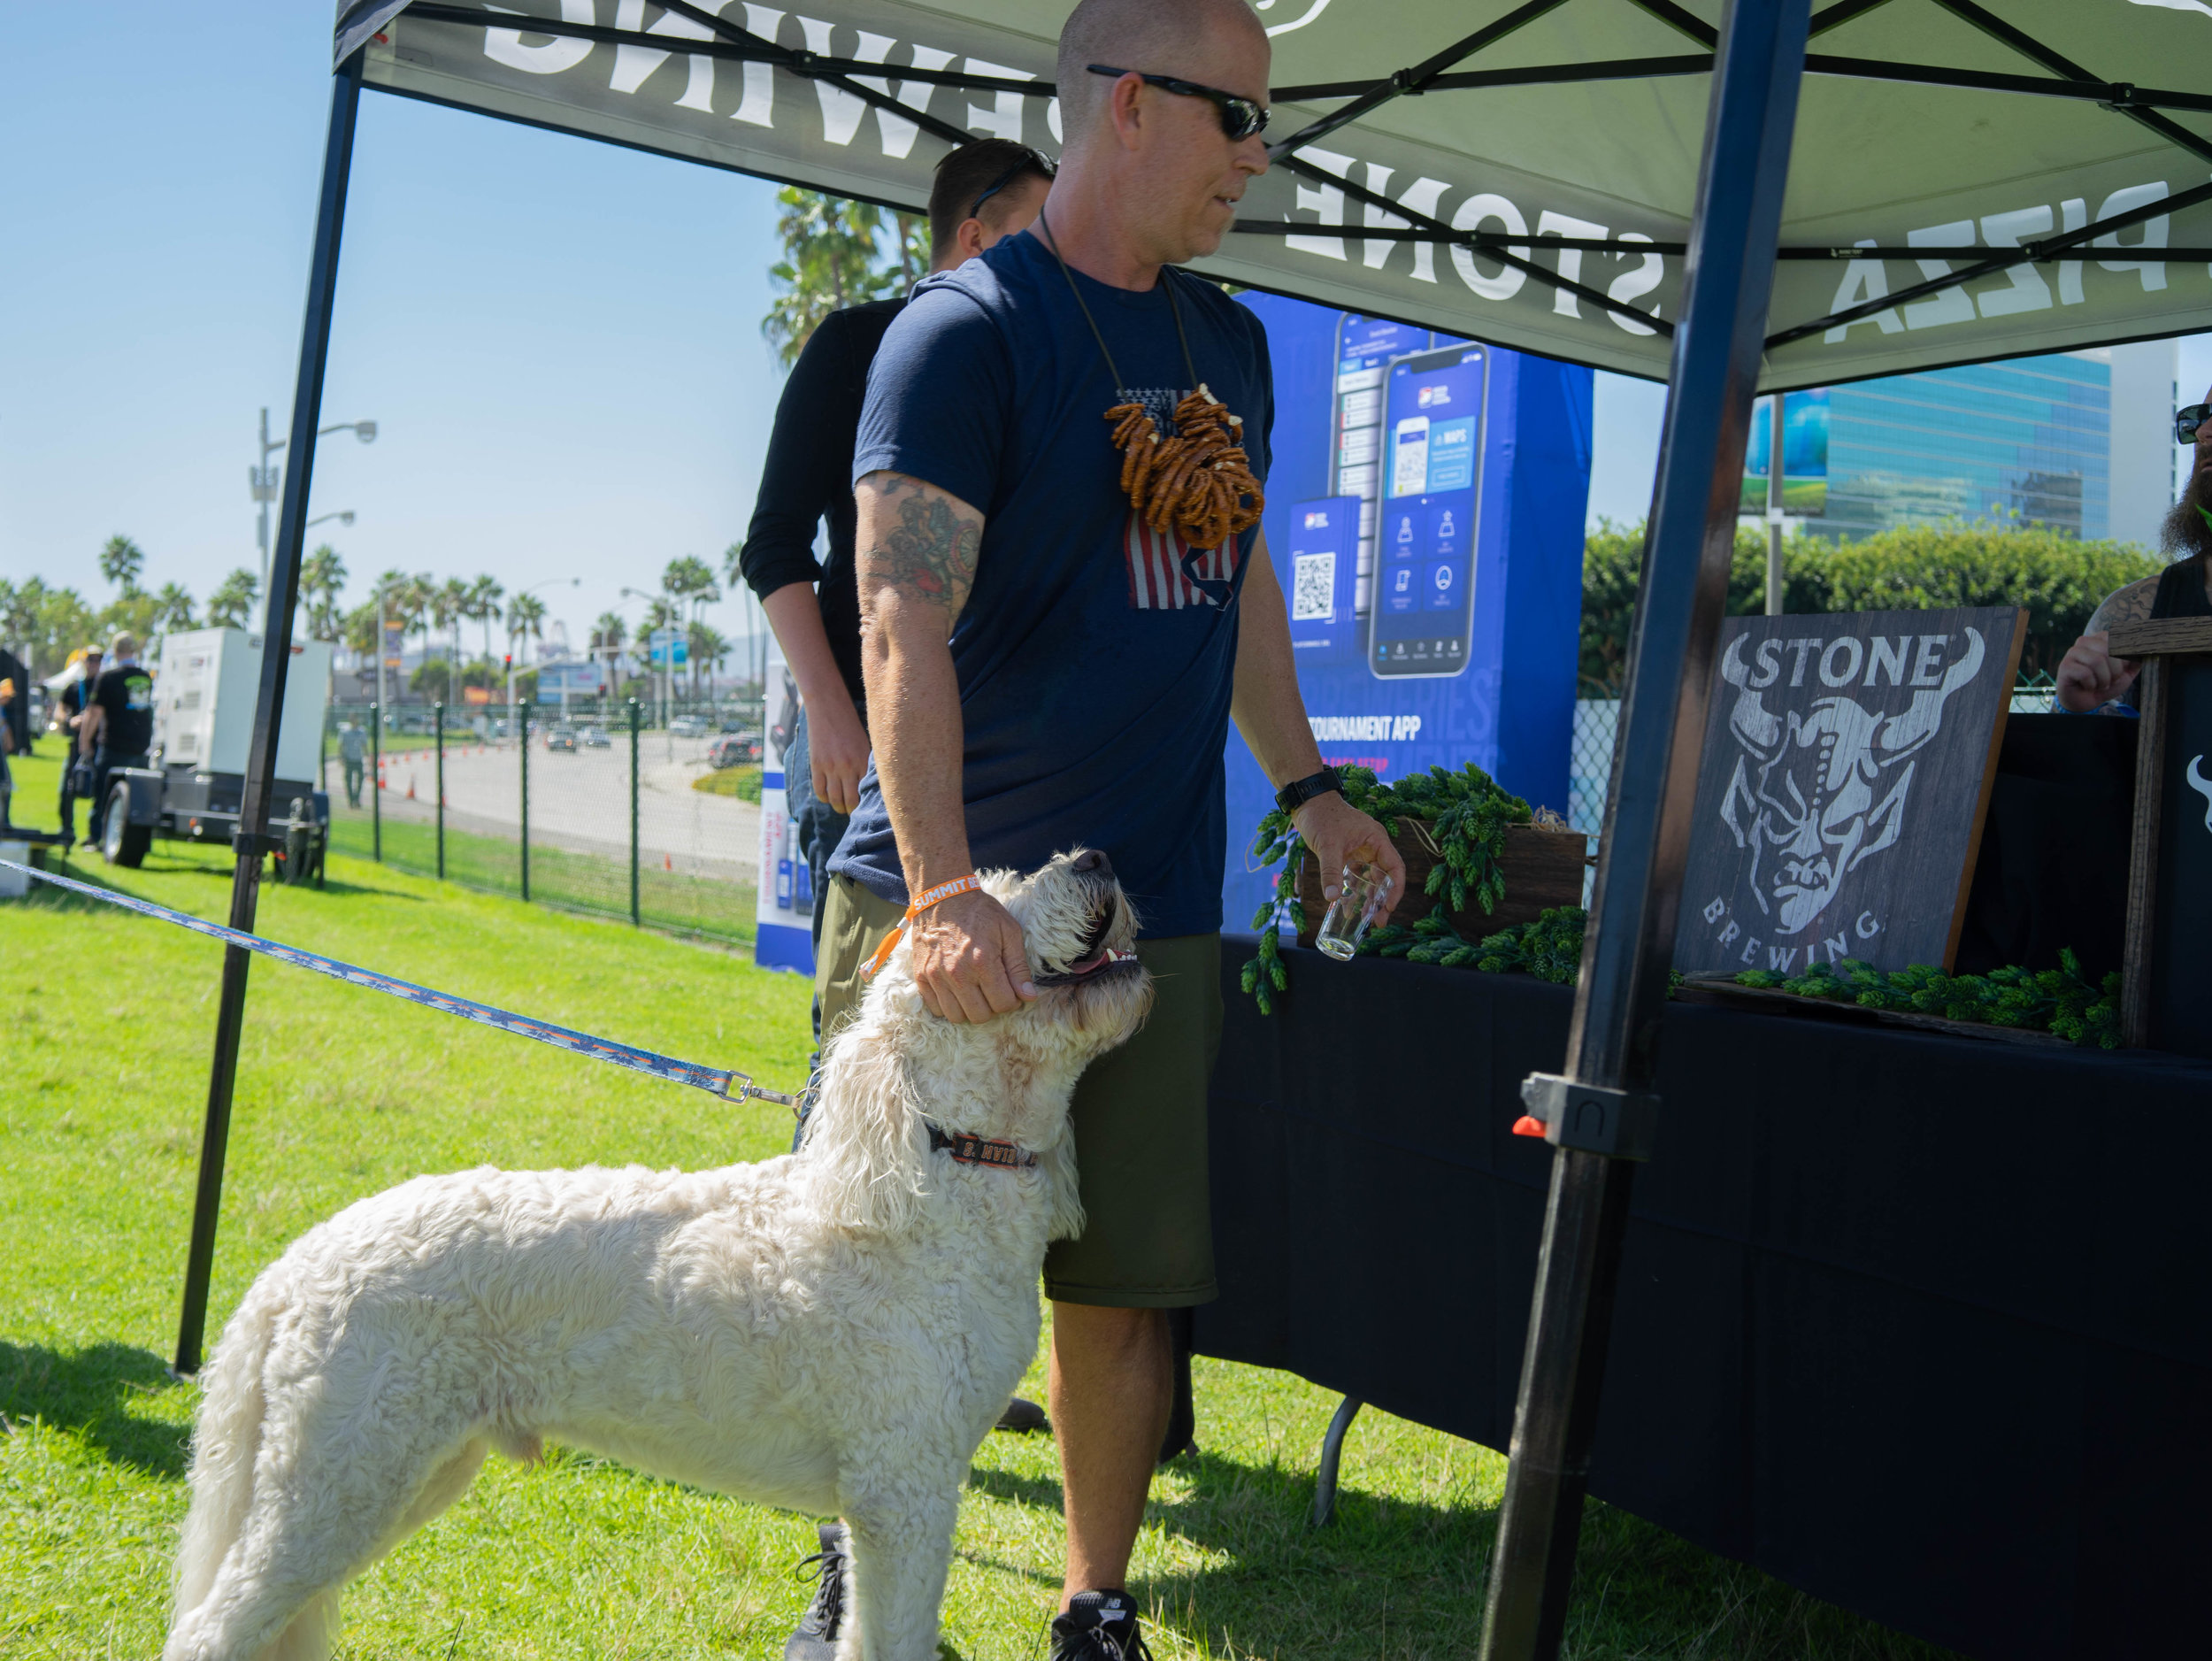 The festival was dog friendly, and the dogs present were very friendly, indeed.